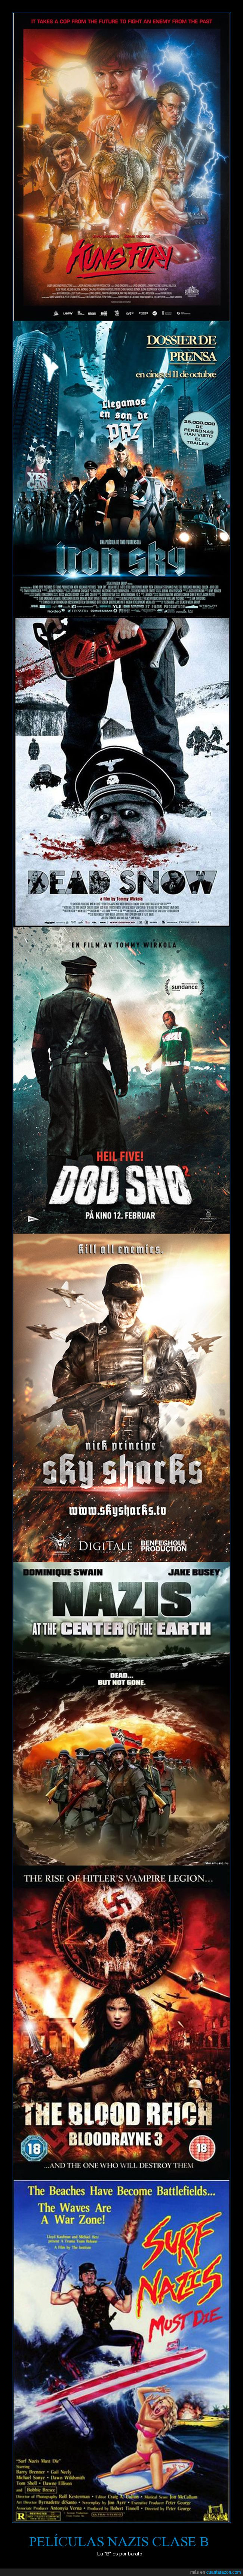 clase b,Dead Snow,dinosurios,Iron Sky,Kung Fury,películas nazis,policias,Sky Sharks,surfers,The blood Reich,vampiros,zombies